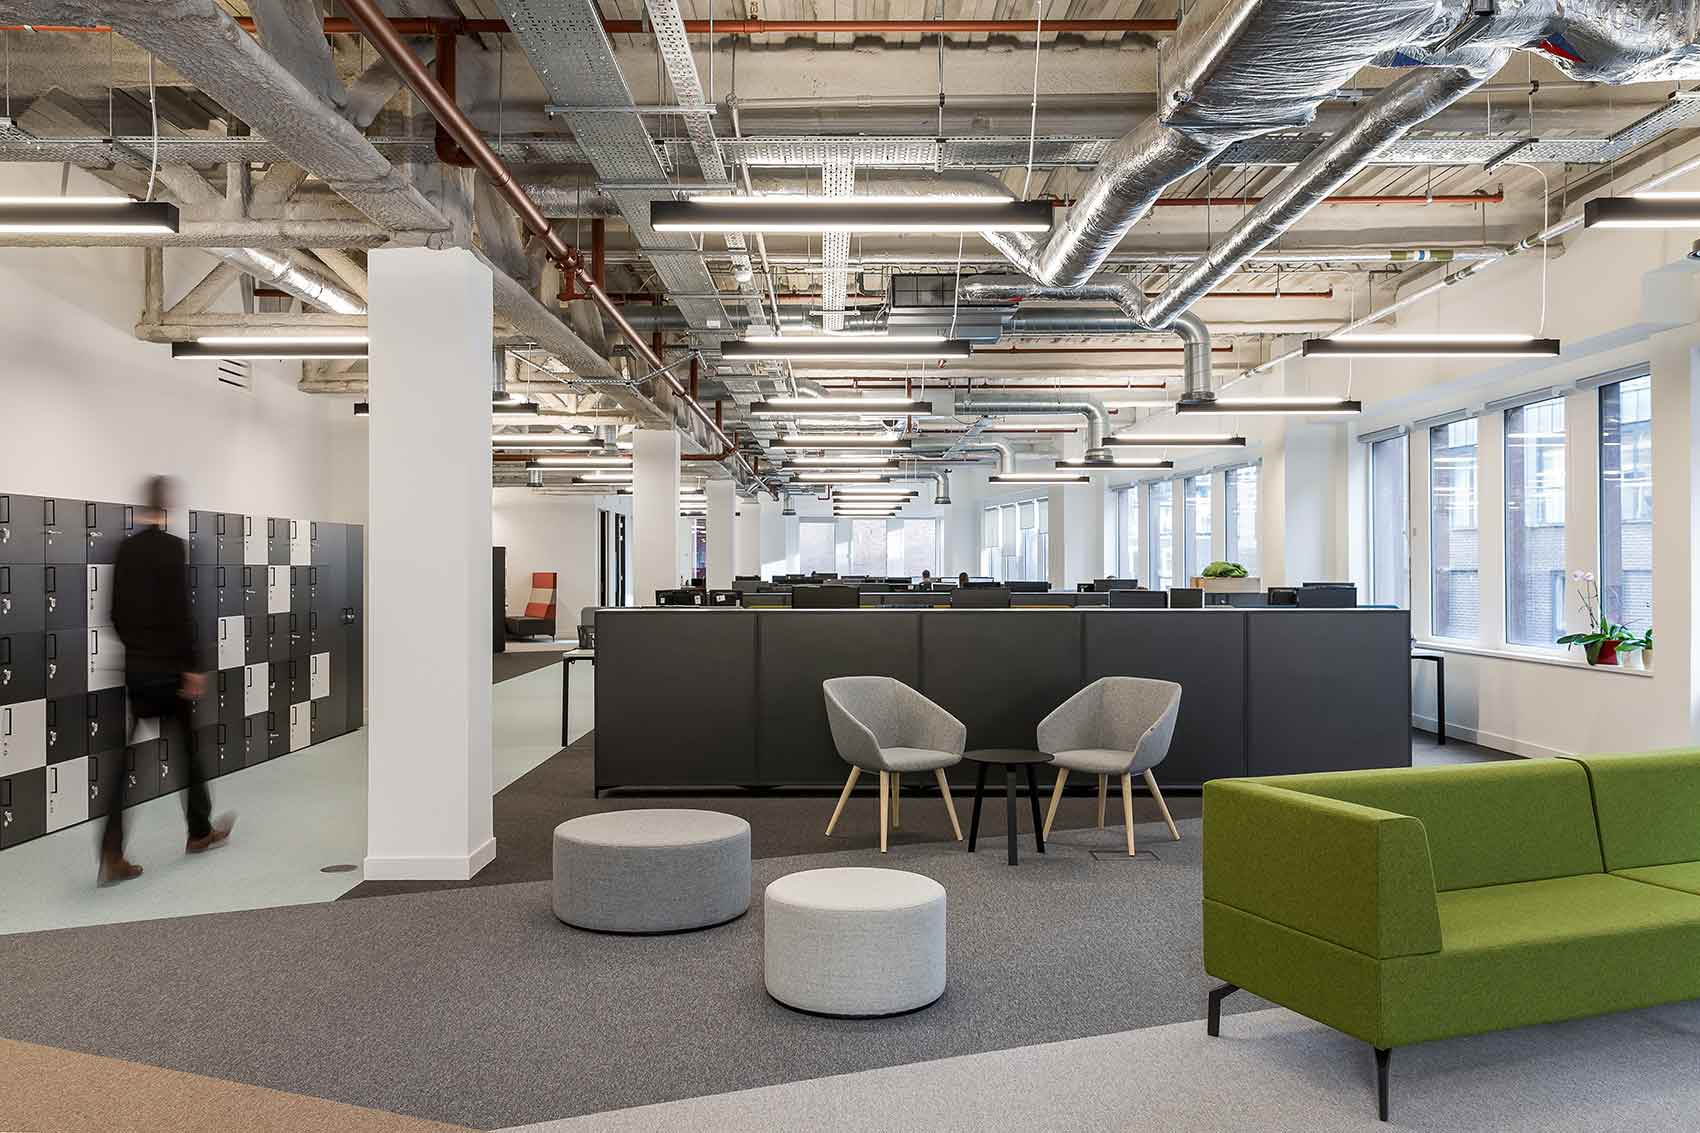 Open plan office with air conditioning system installed